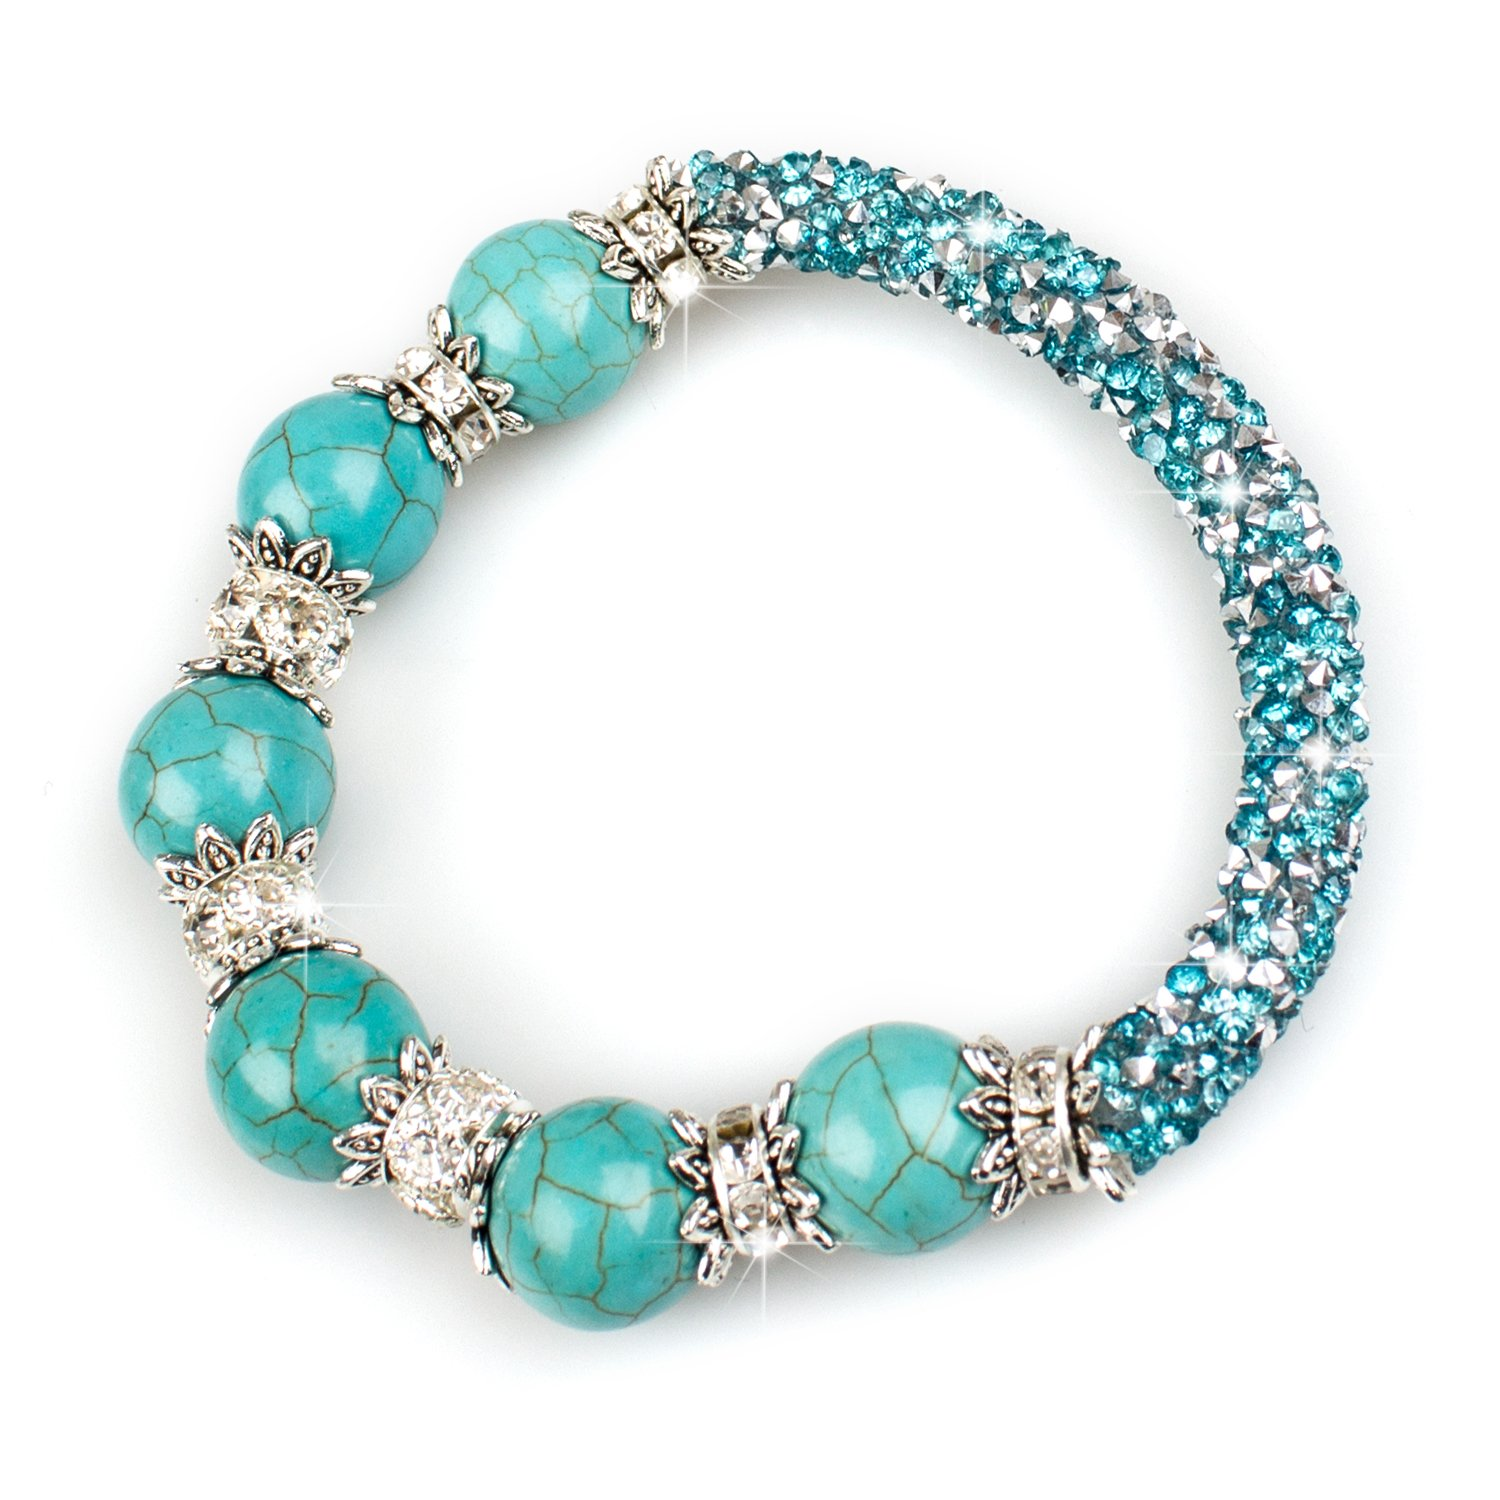 Leefi Turquoise,Gem Semi Precious Gemstone 8mm Round Turquoise Beads Stretch Bracelet for Women 6.49'' (Blue Turquoise)